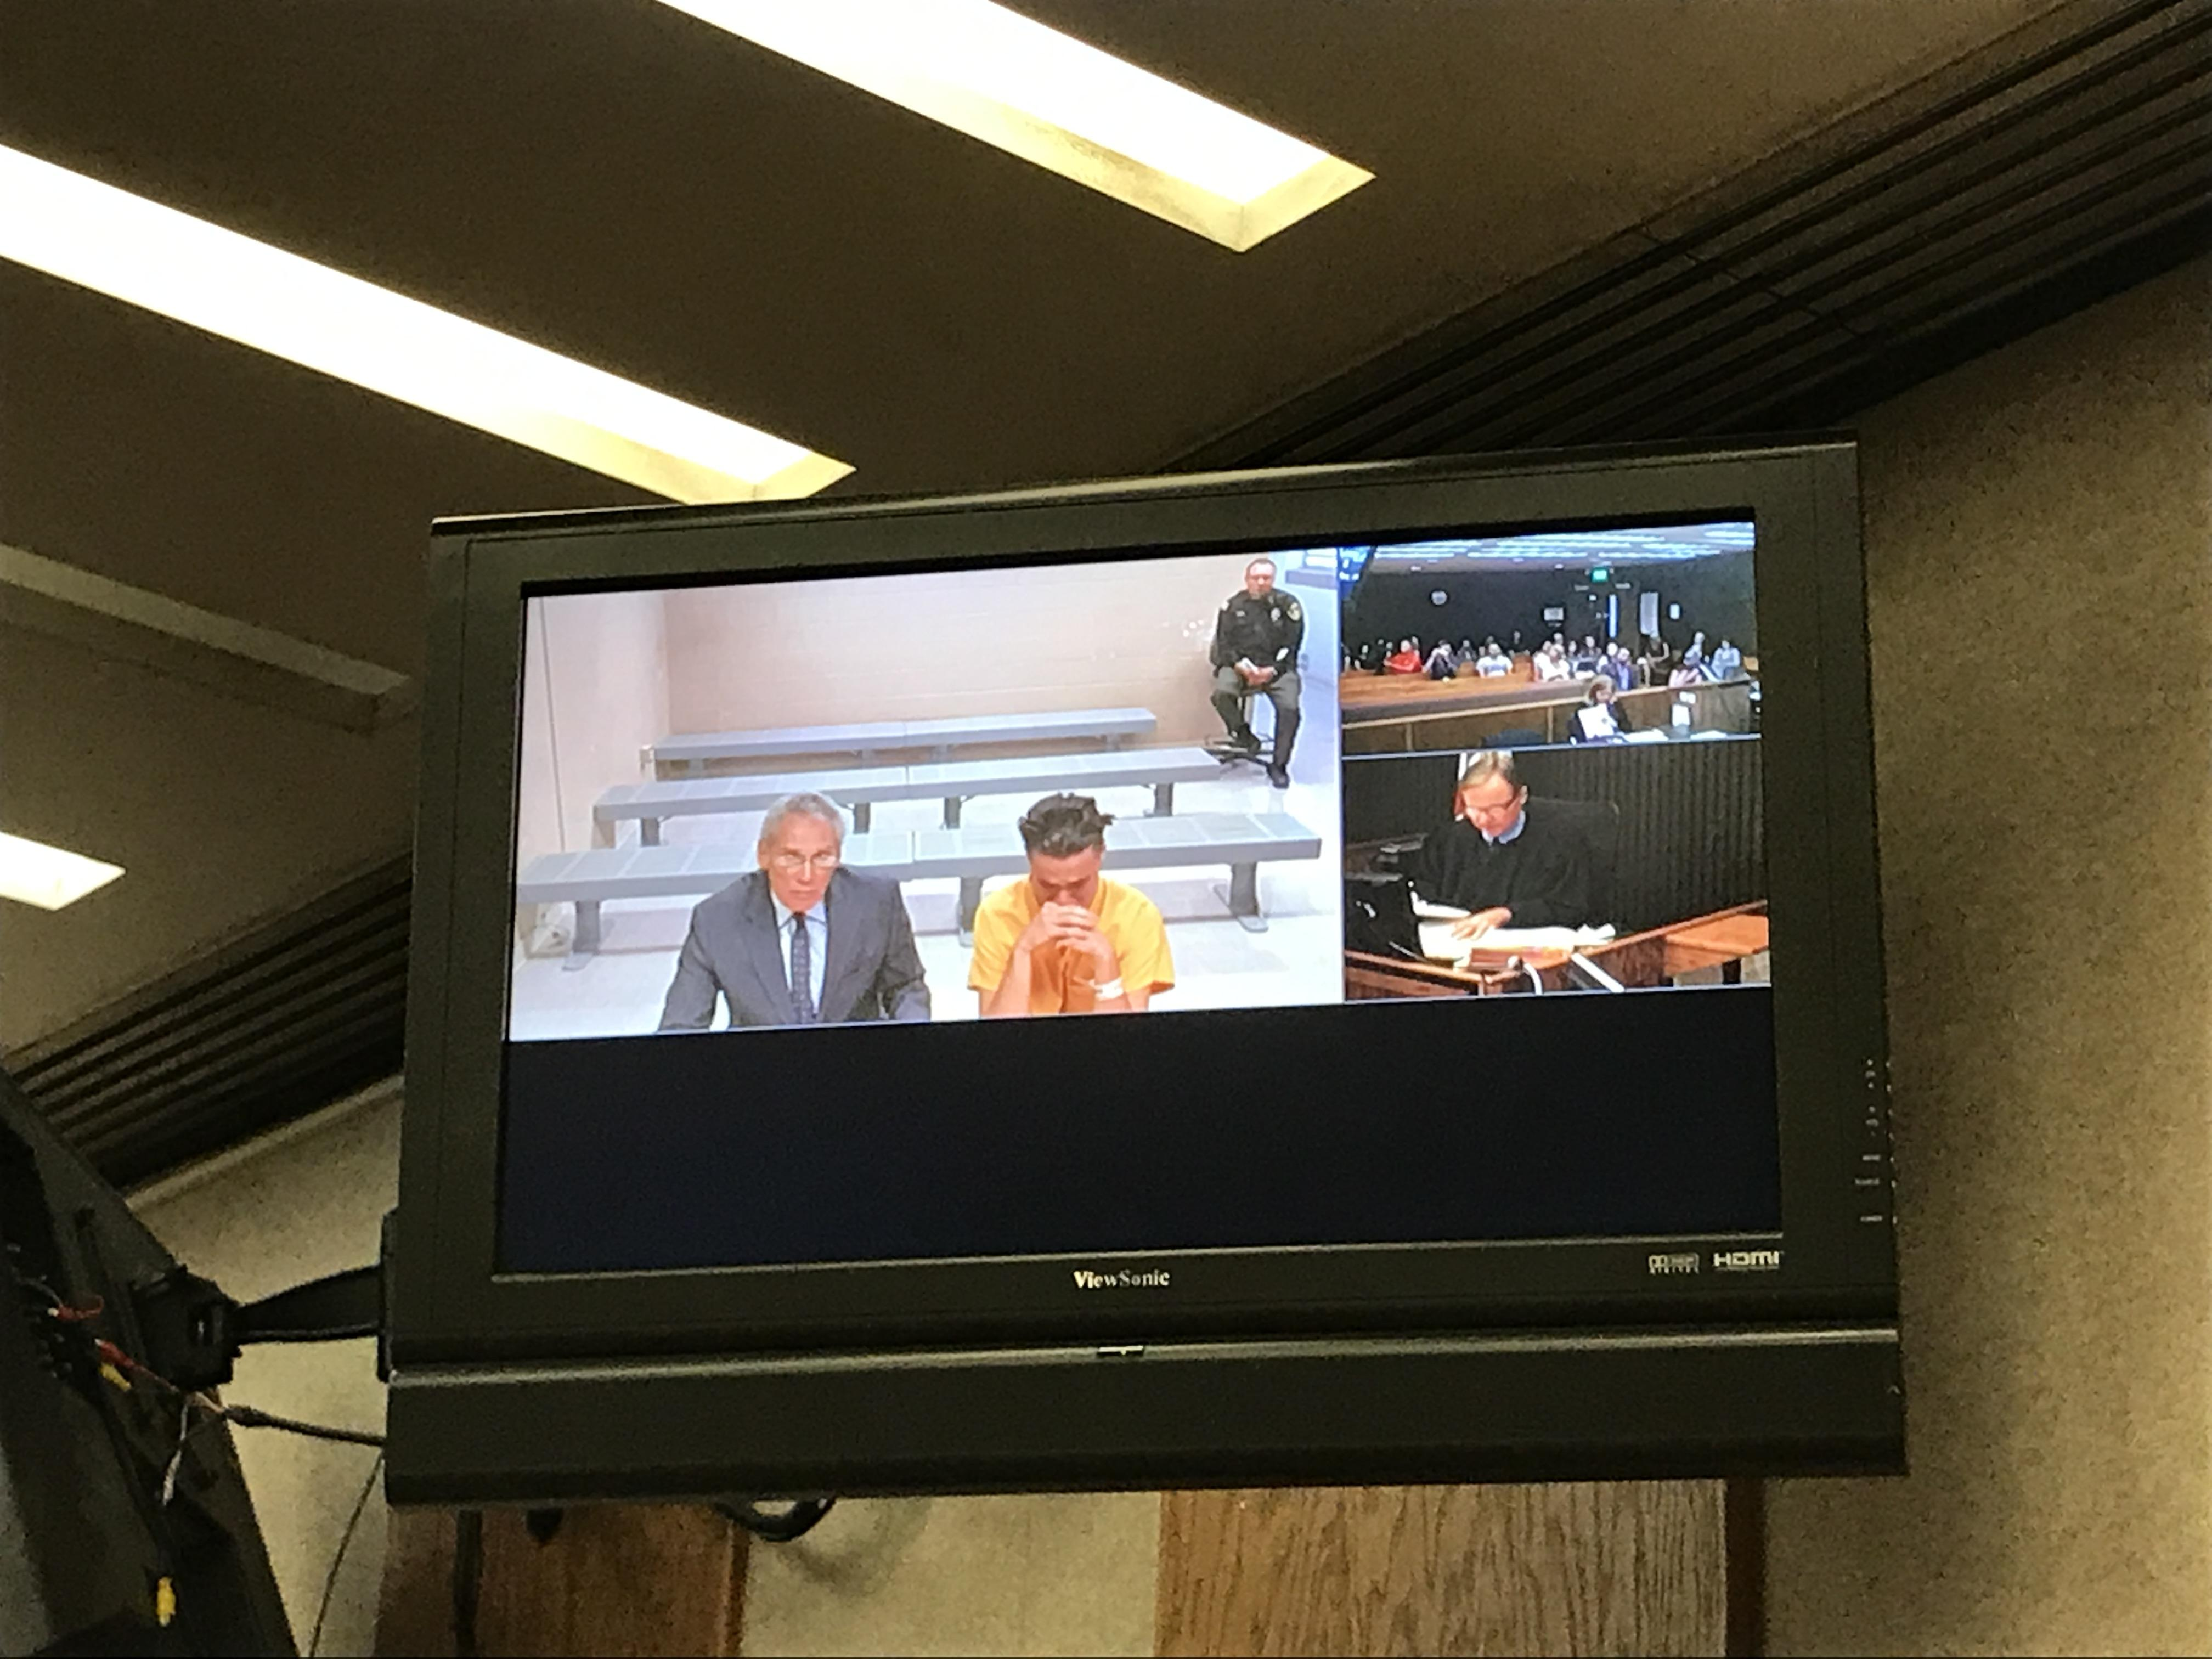 Man Pleads Guilty In Airway Heights Baseball Bat Beating Death The Viewsonic 28 Christian Palmer 18 Had Bail Set At 750000 Court Monday Aug